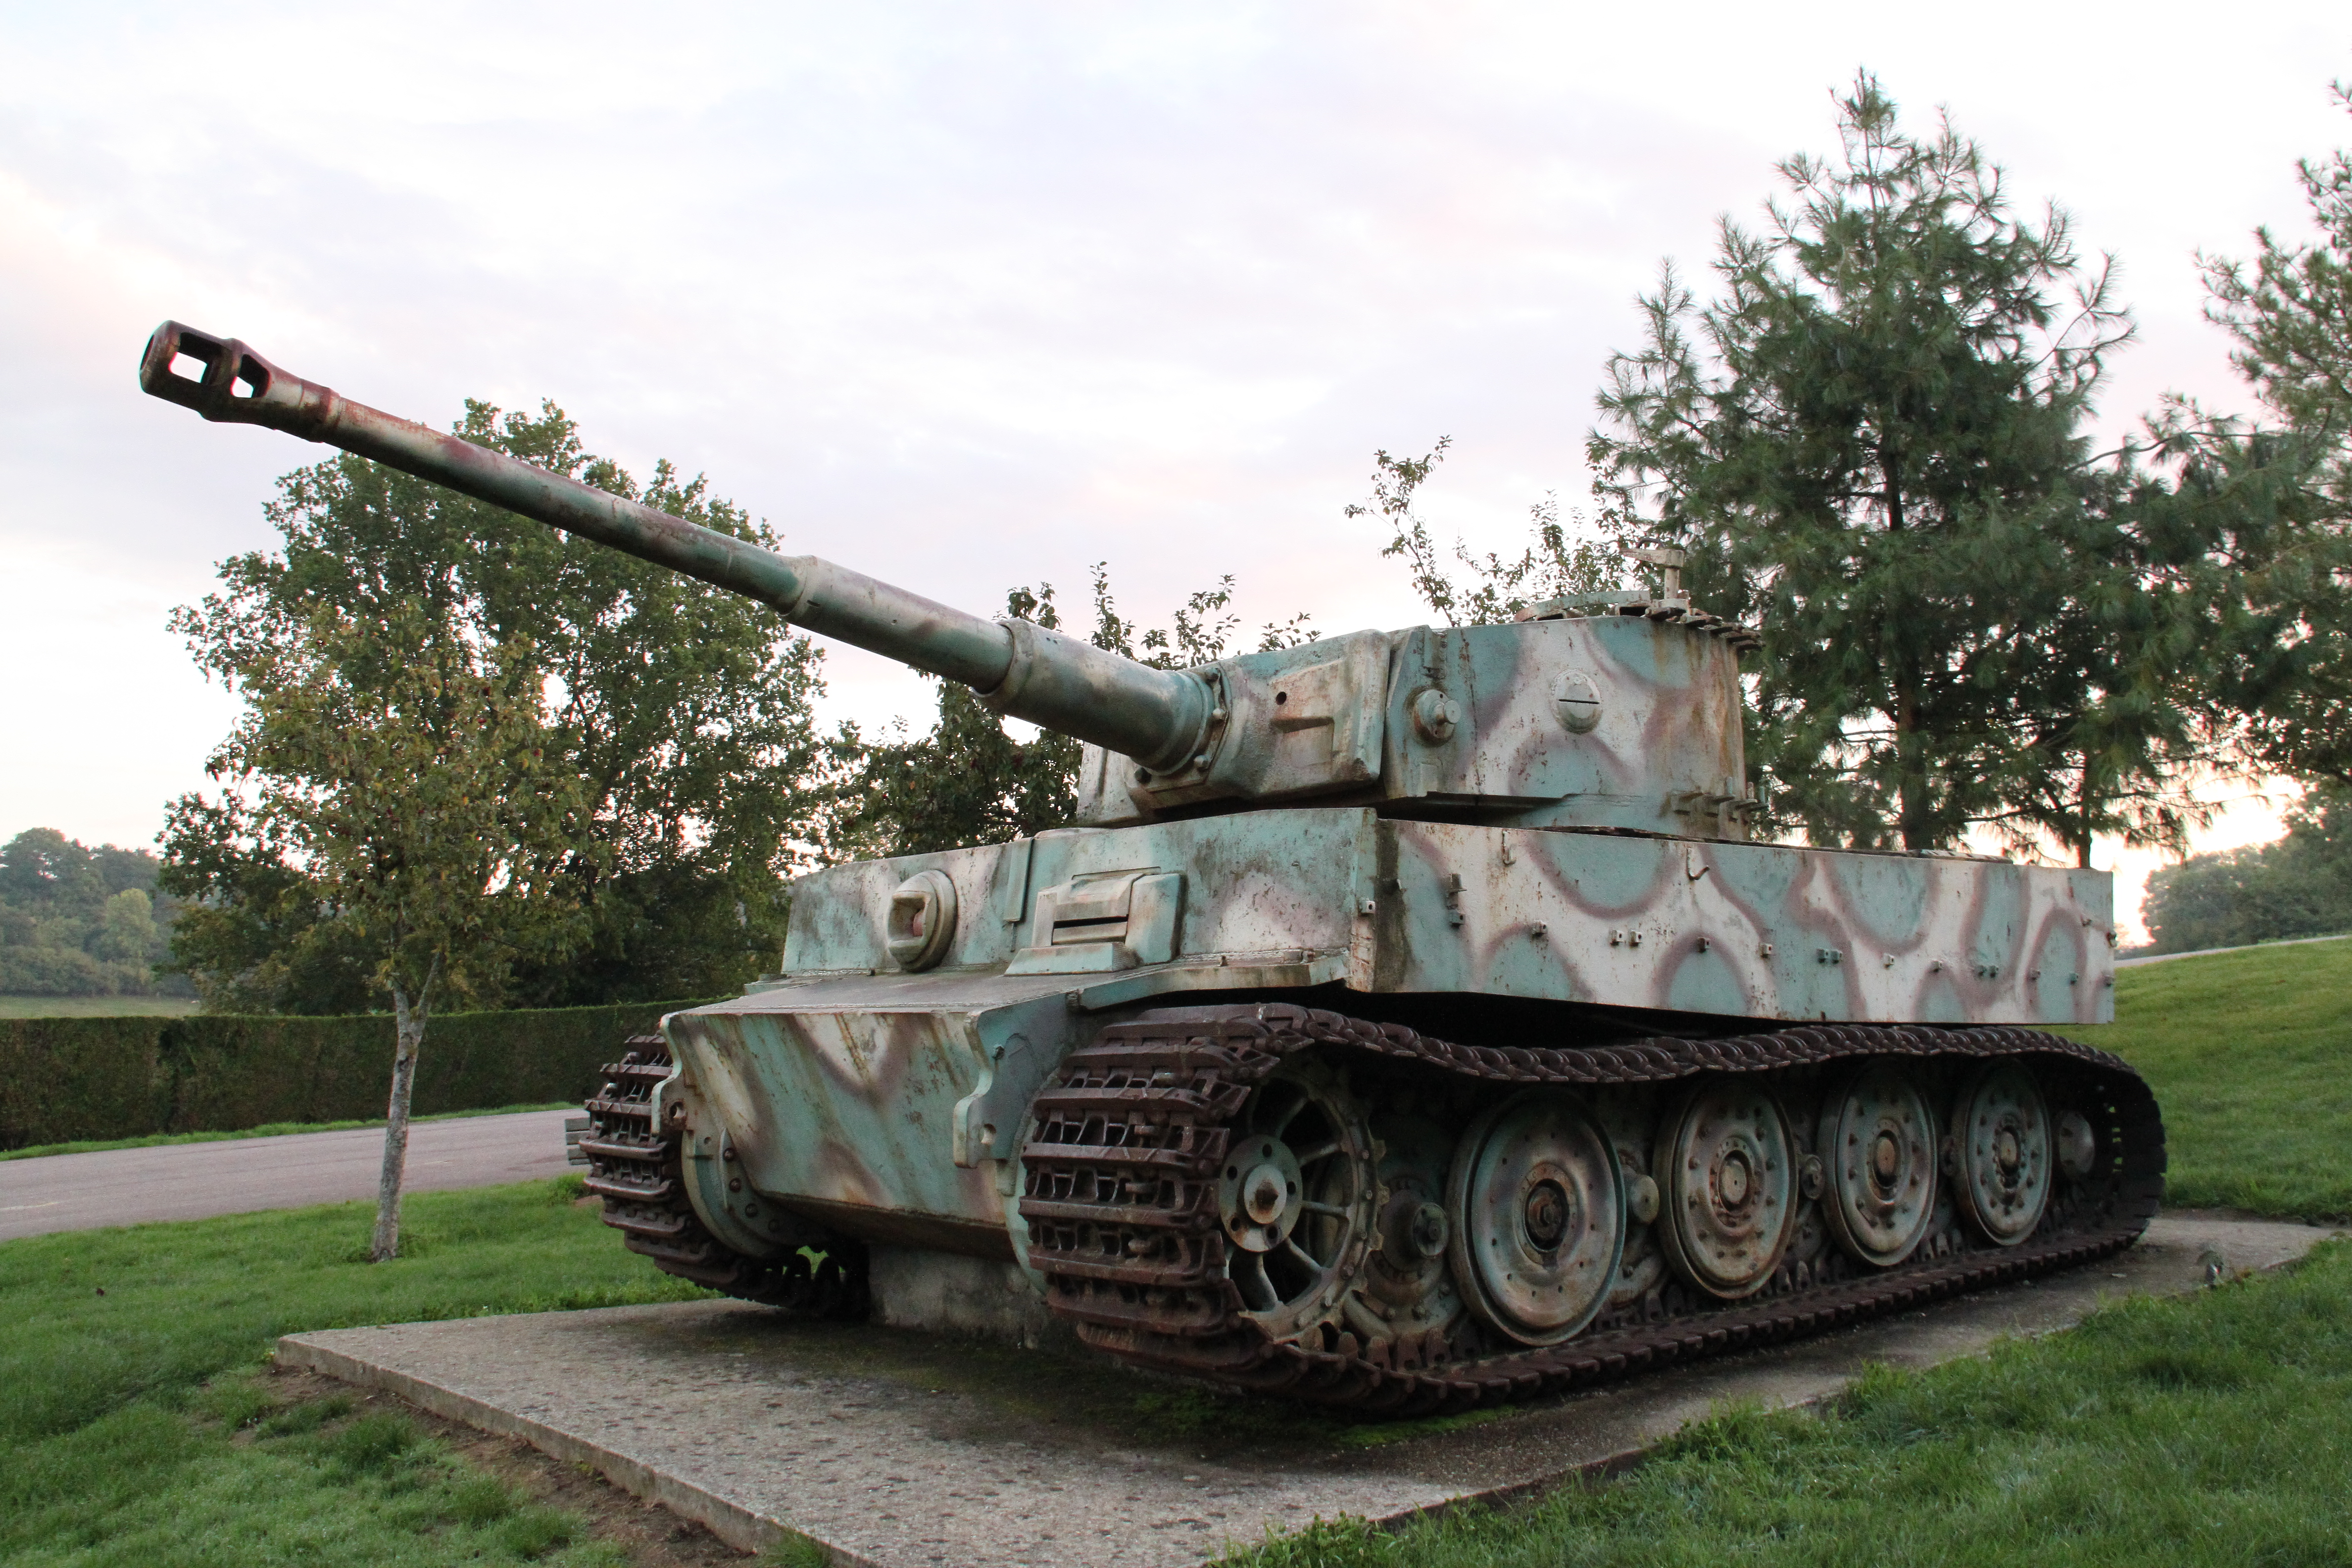 Vimoutiers Tiger tank - Wikipedia